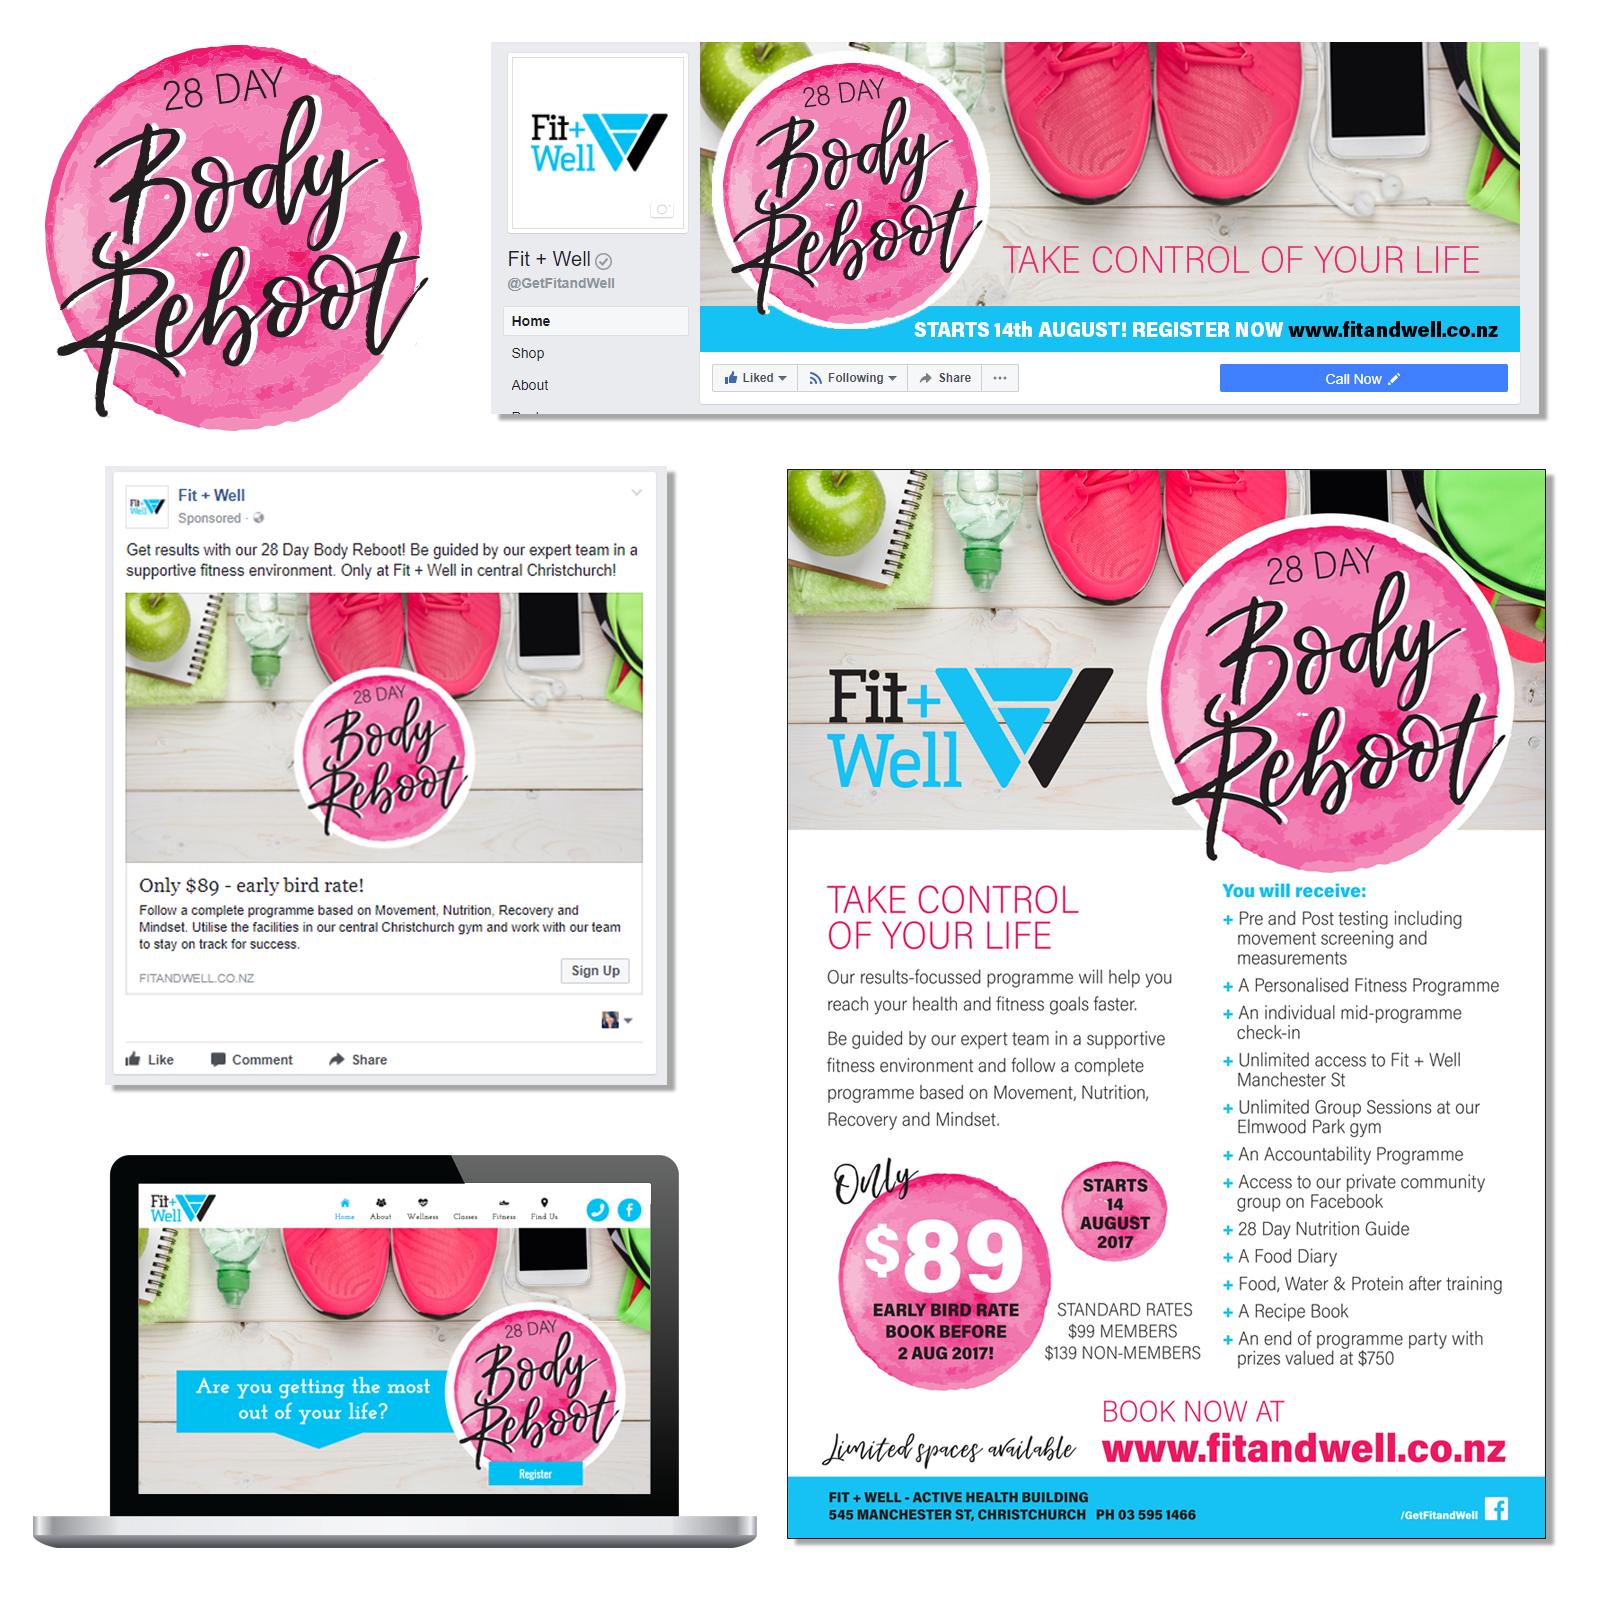 28 DAY BODY REBOOT CAMPAIGN GRAPHIC DESIGN FOR SOCIAL MEDIA, WEB & PRINT